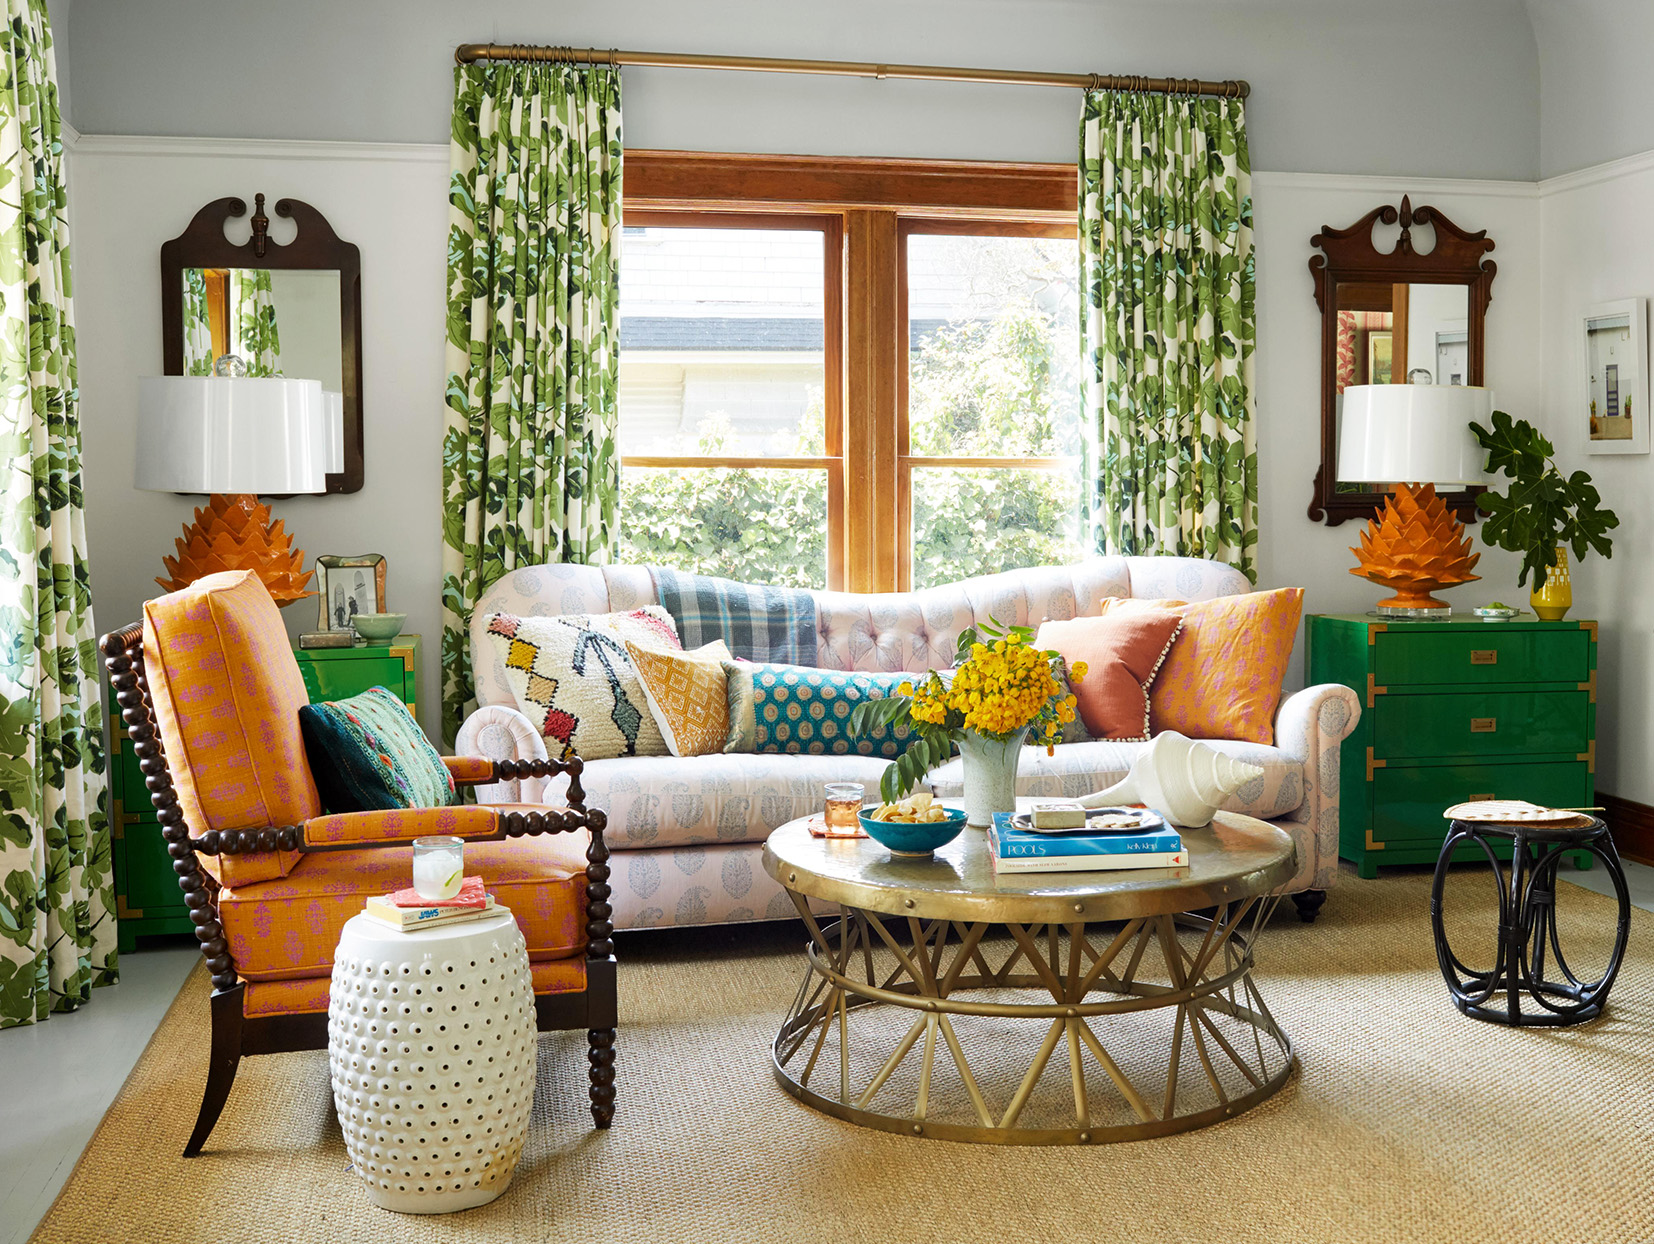 Liz Strong home patterned living room